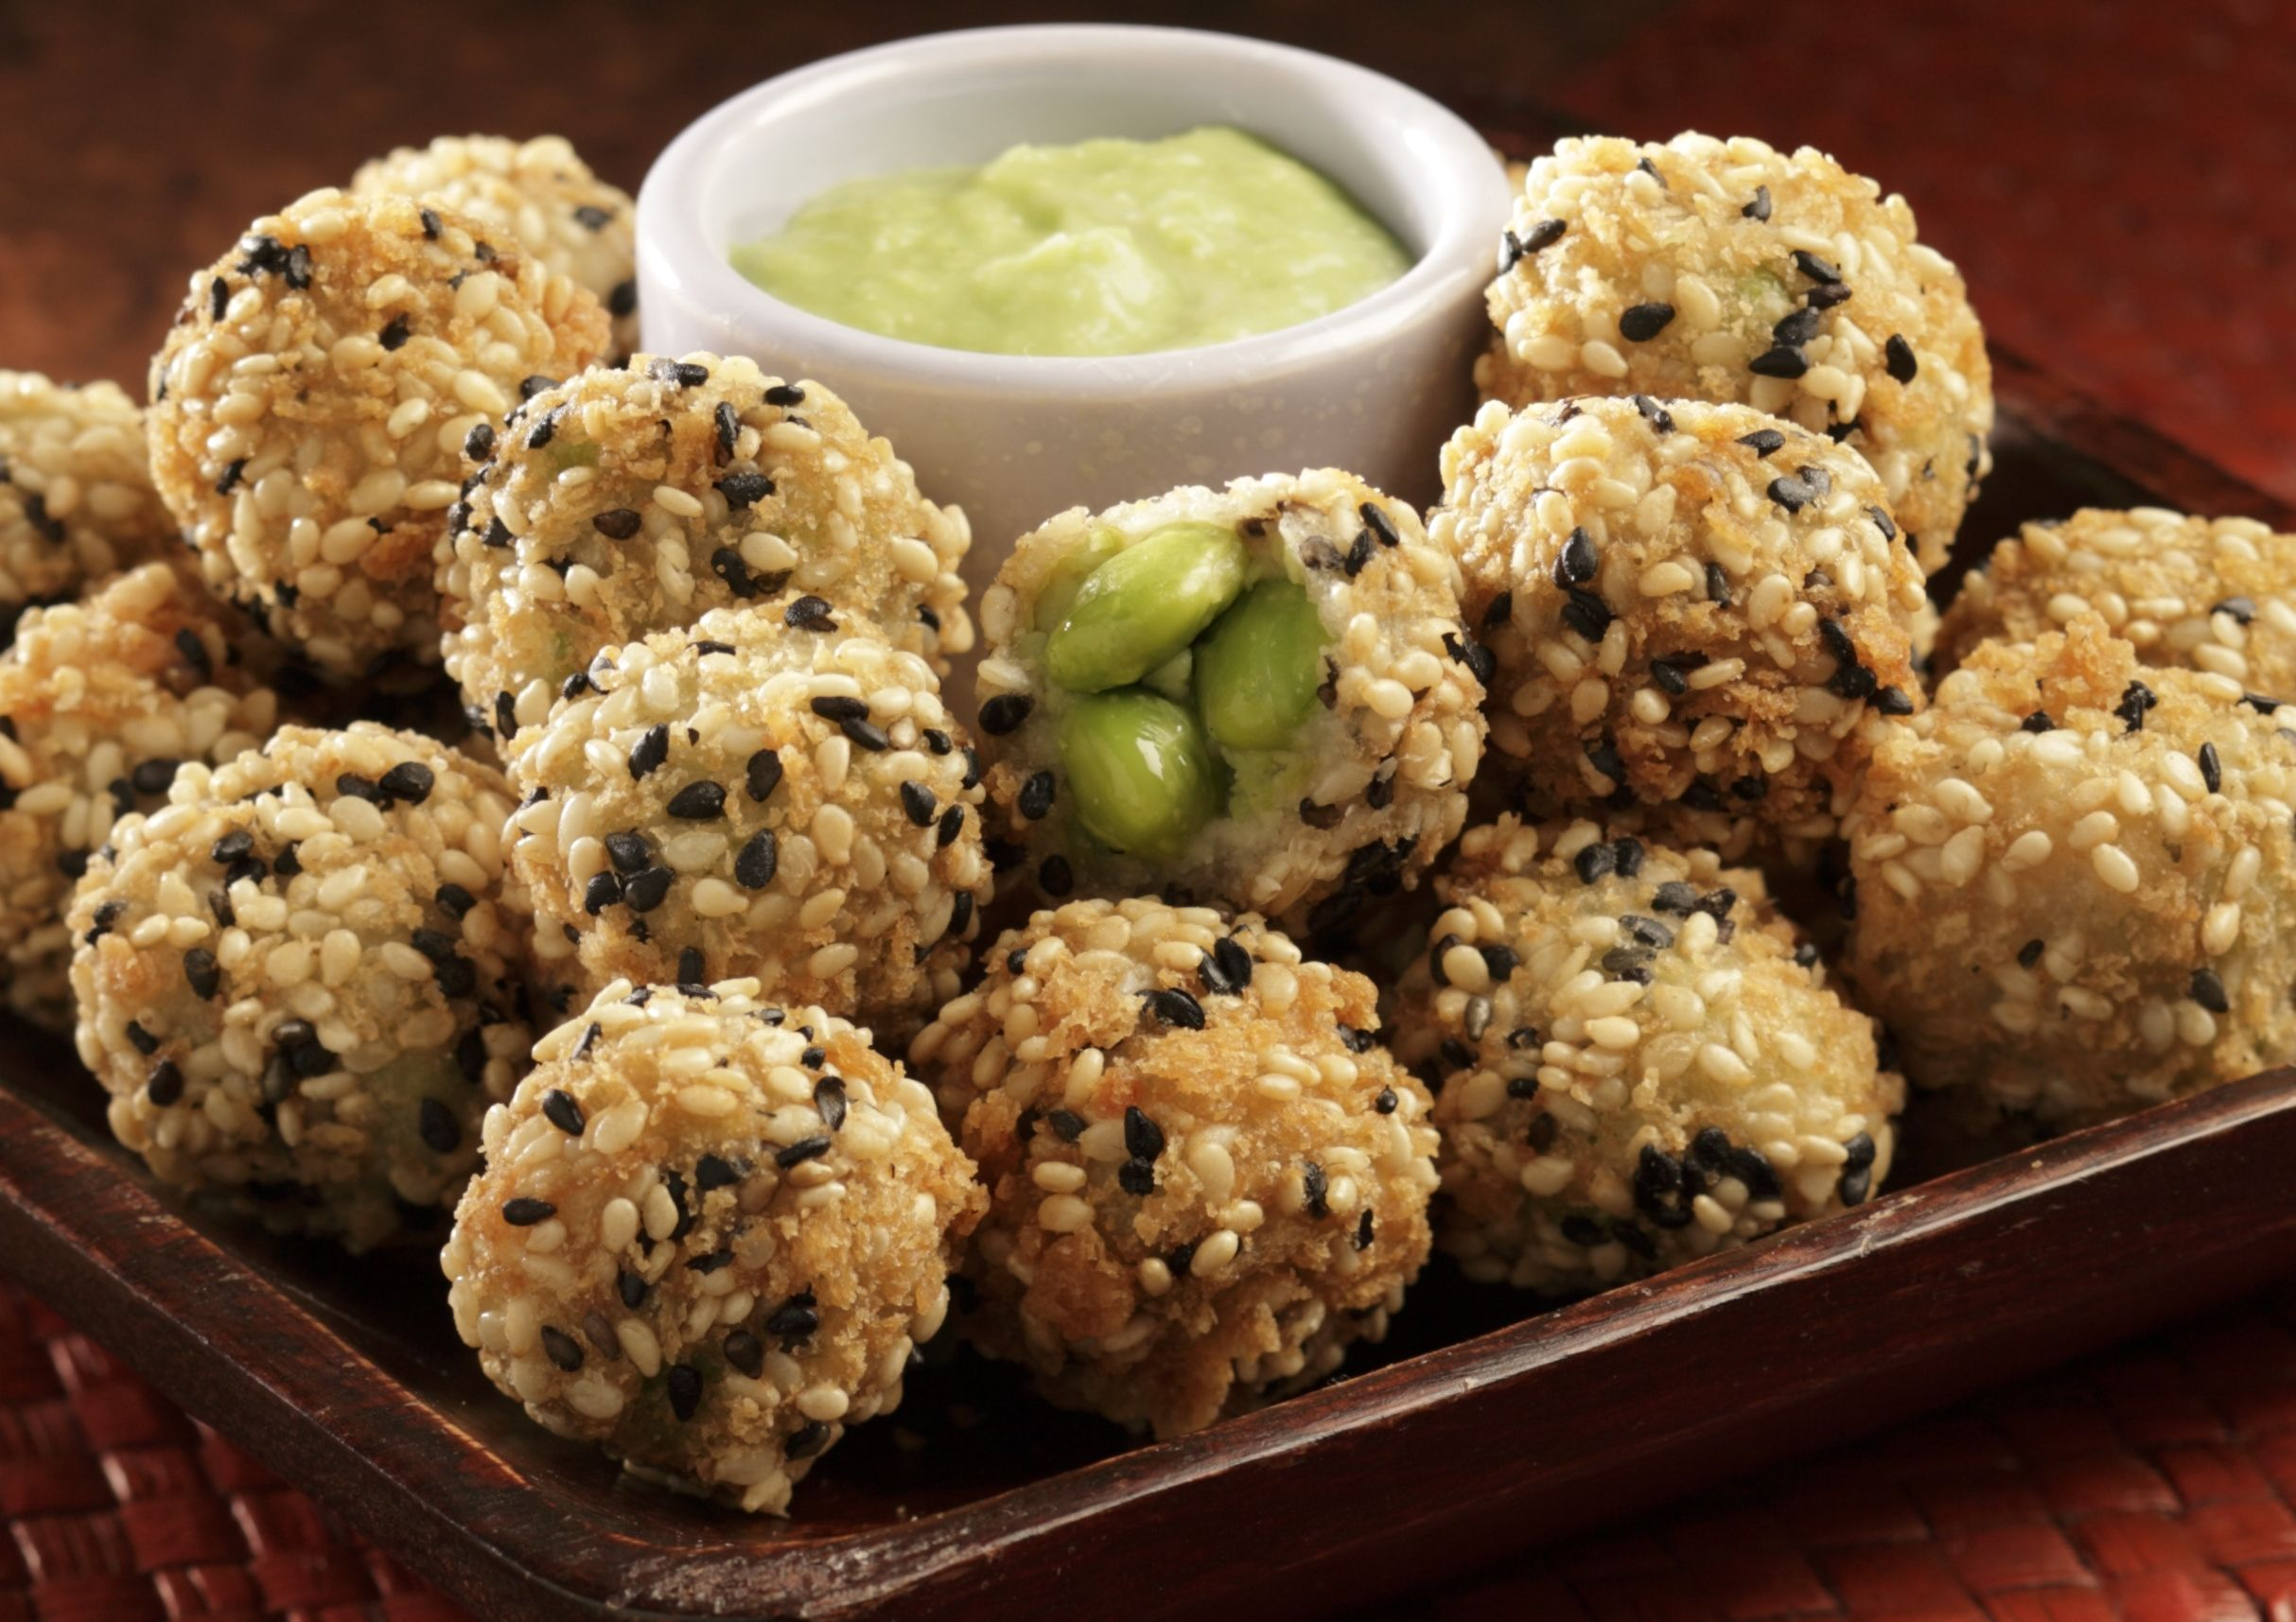 Wasabi Flavor And Encrusted In Our Crunchy Panko Coating And